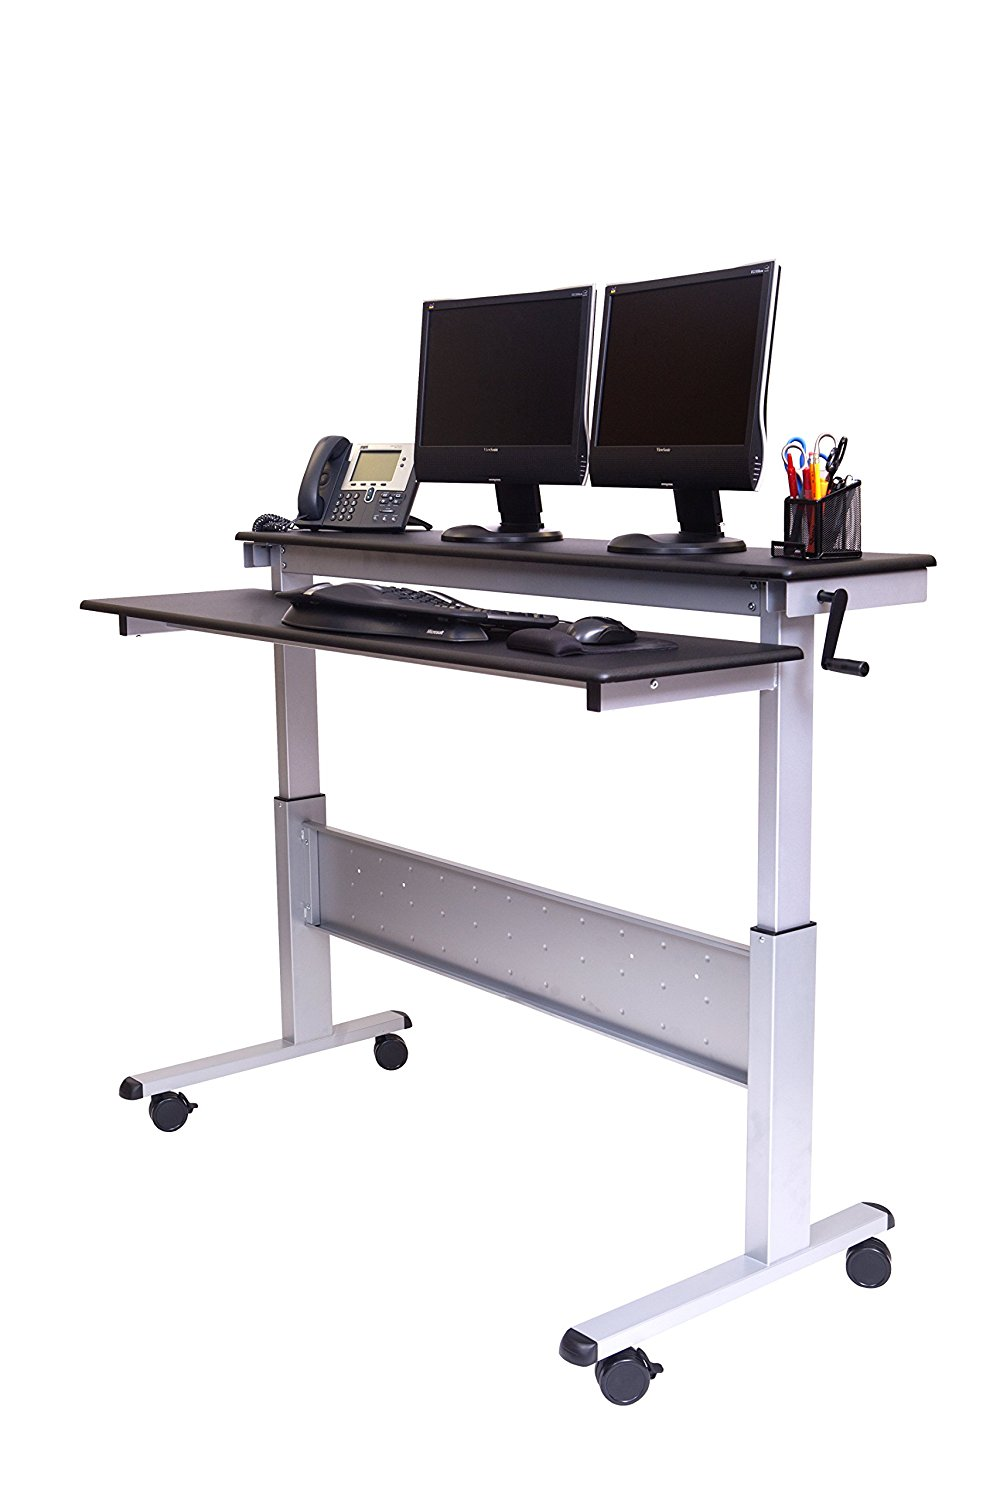 Stand Up Desks Reviews Uplift 900 Stand Up Desk With 1